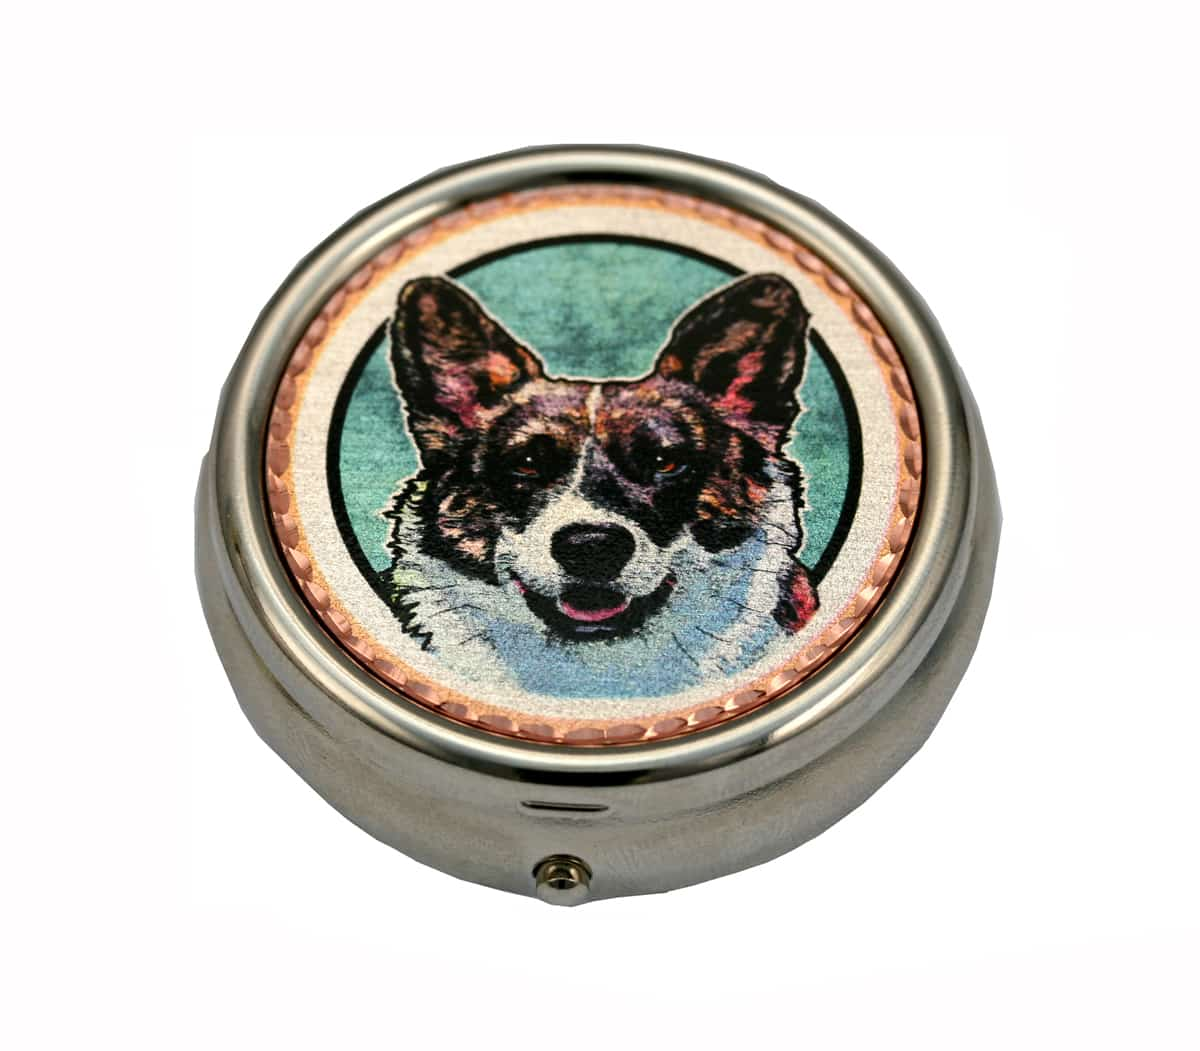 Cardigan Welsh Corgis Dog Gifts Pill Boxes